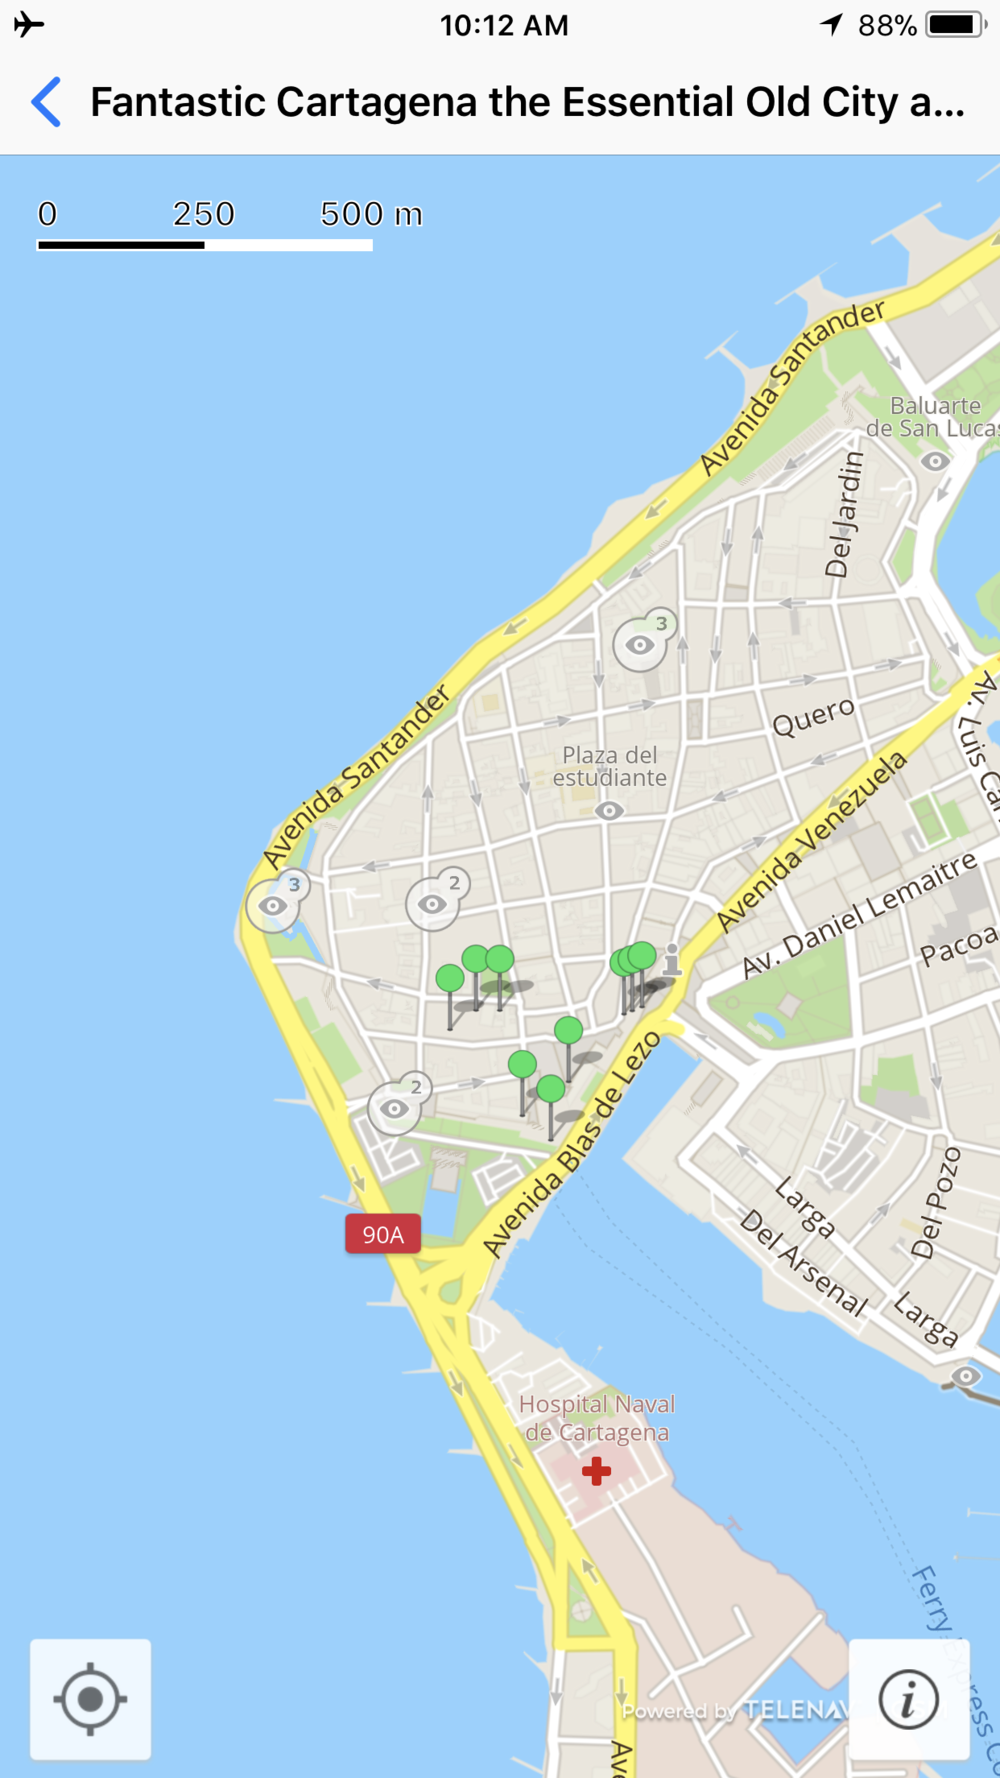 Here's the map of the travel article. Each green pin represents a place Michael and I walked to and learned more about using the  GPSmyCity  app.